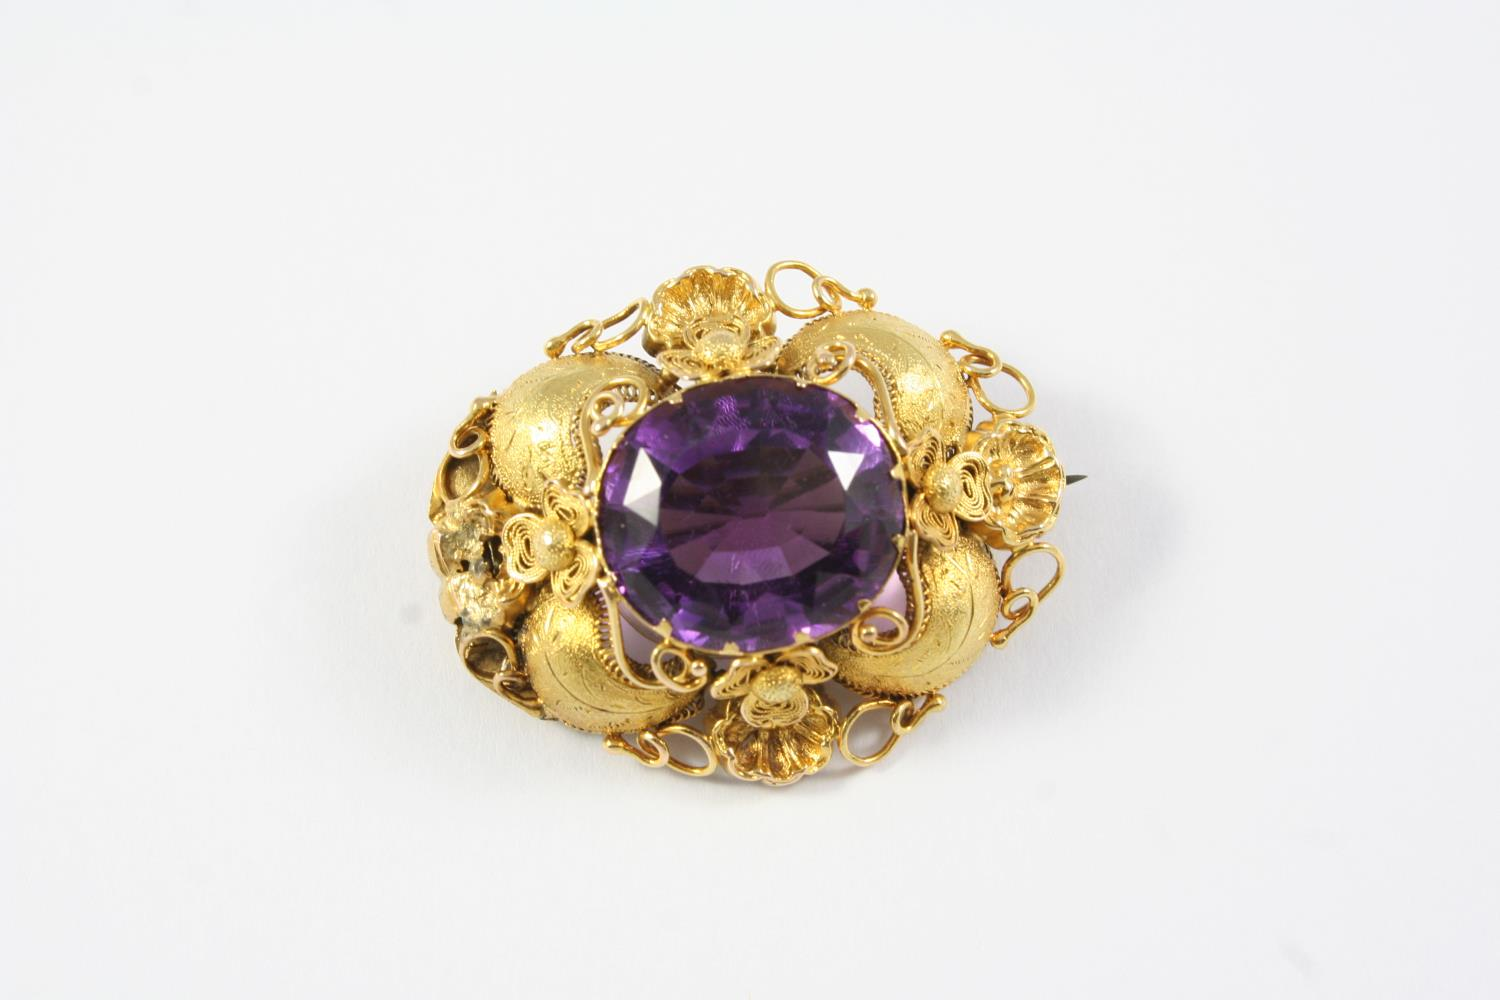 A VICTORIAN AMETHYST AND GOLD BROOCH the oval-shaped amethyst is set within an ornate foliate and